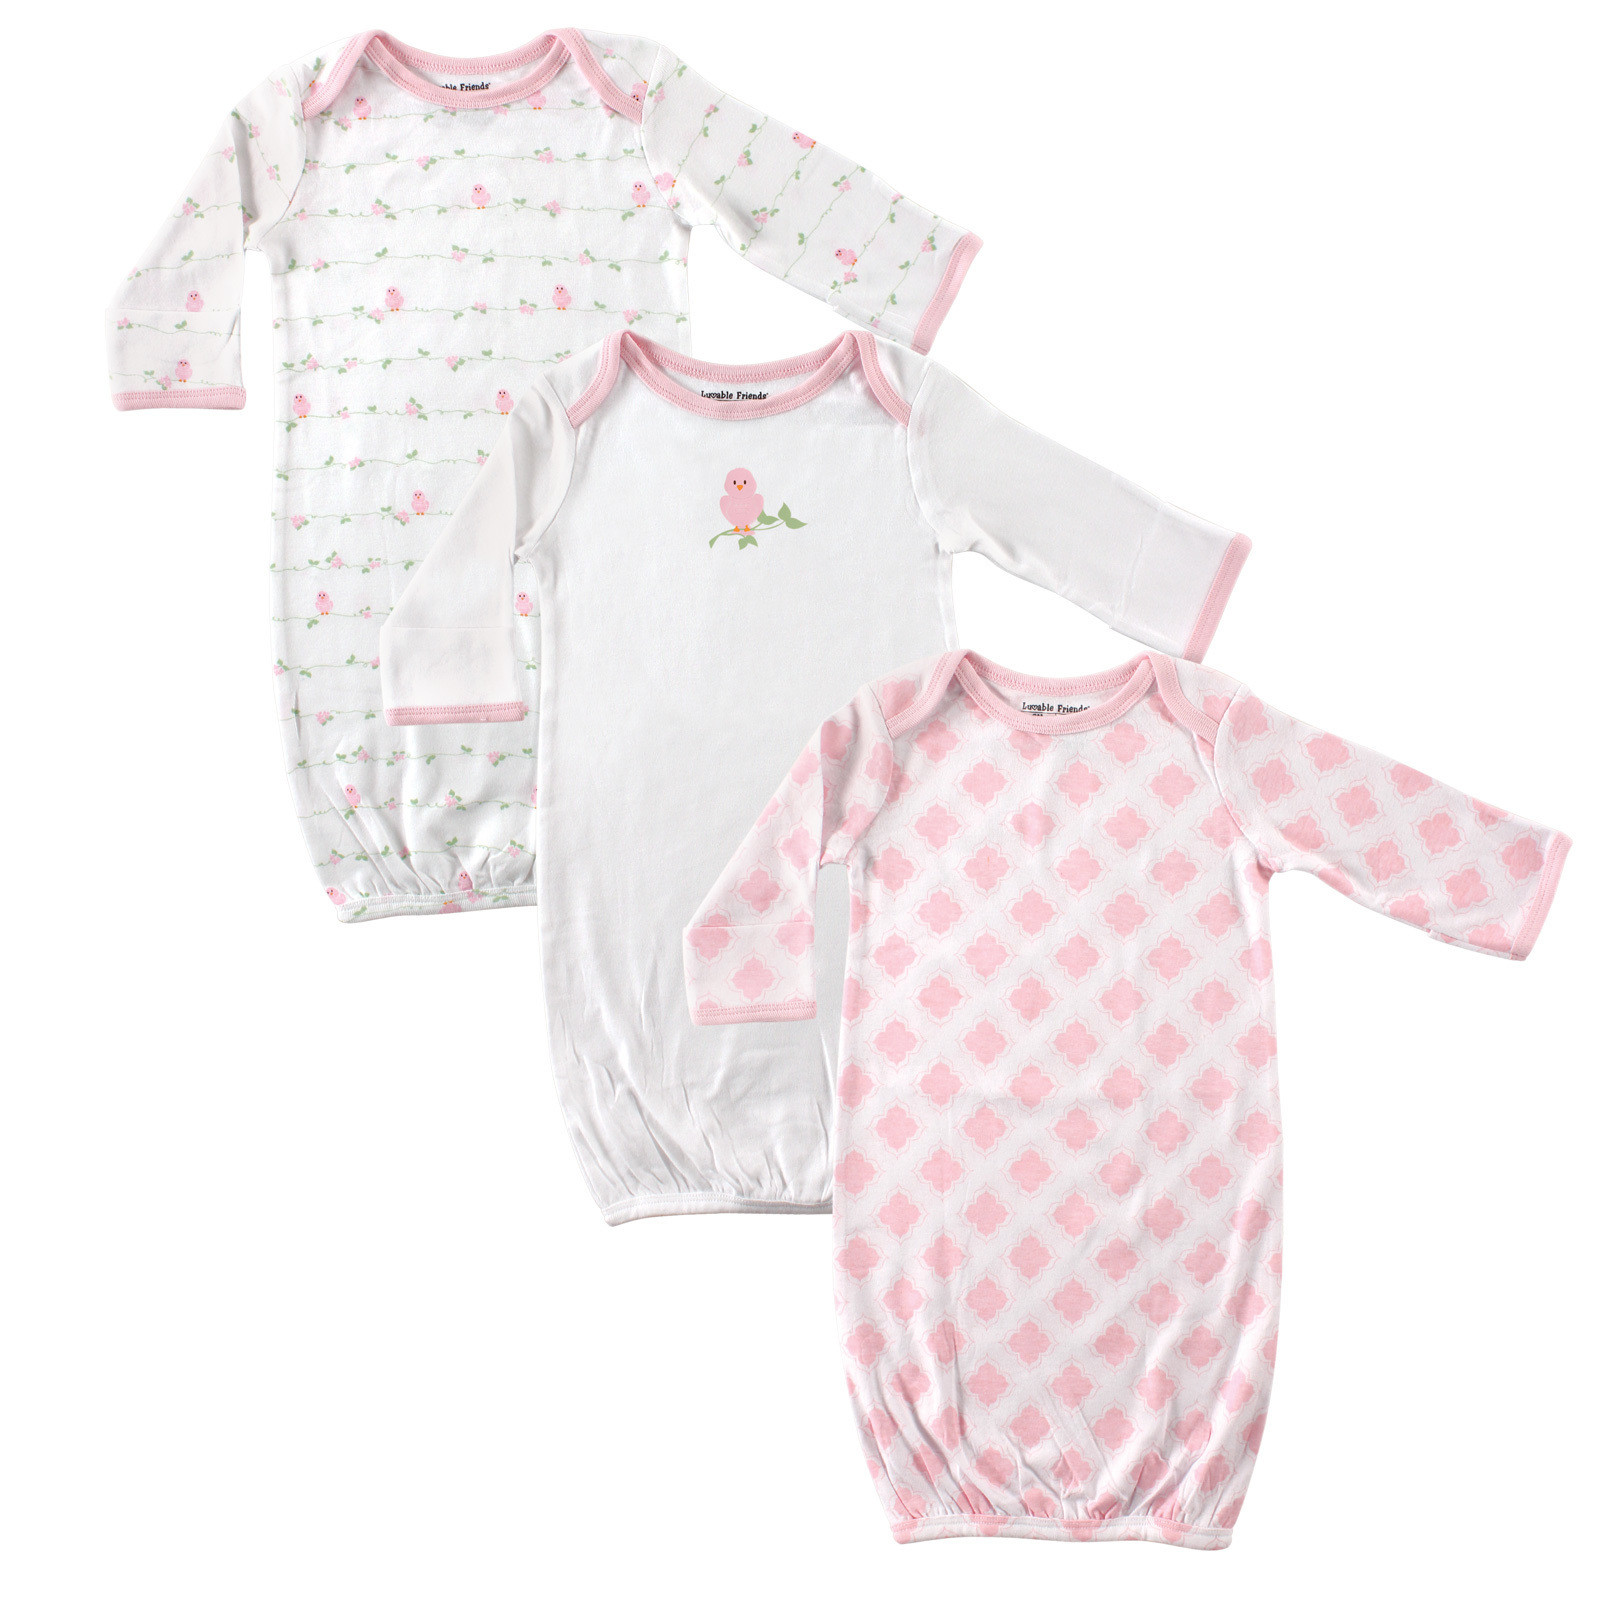 Luvable Friends - Baby Sleep Gowns, 3-Pack | Affordable Infant Clothing